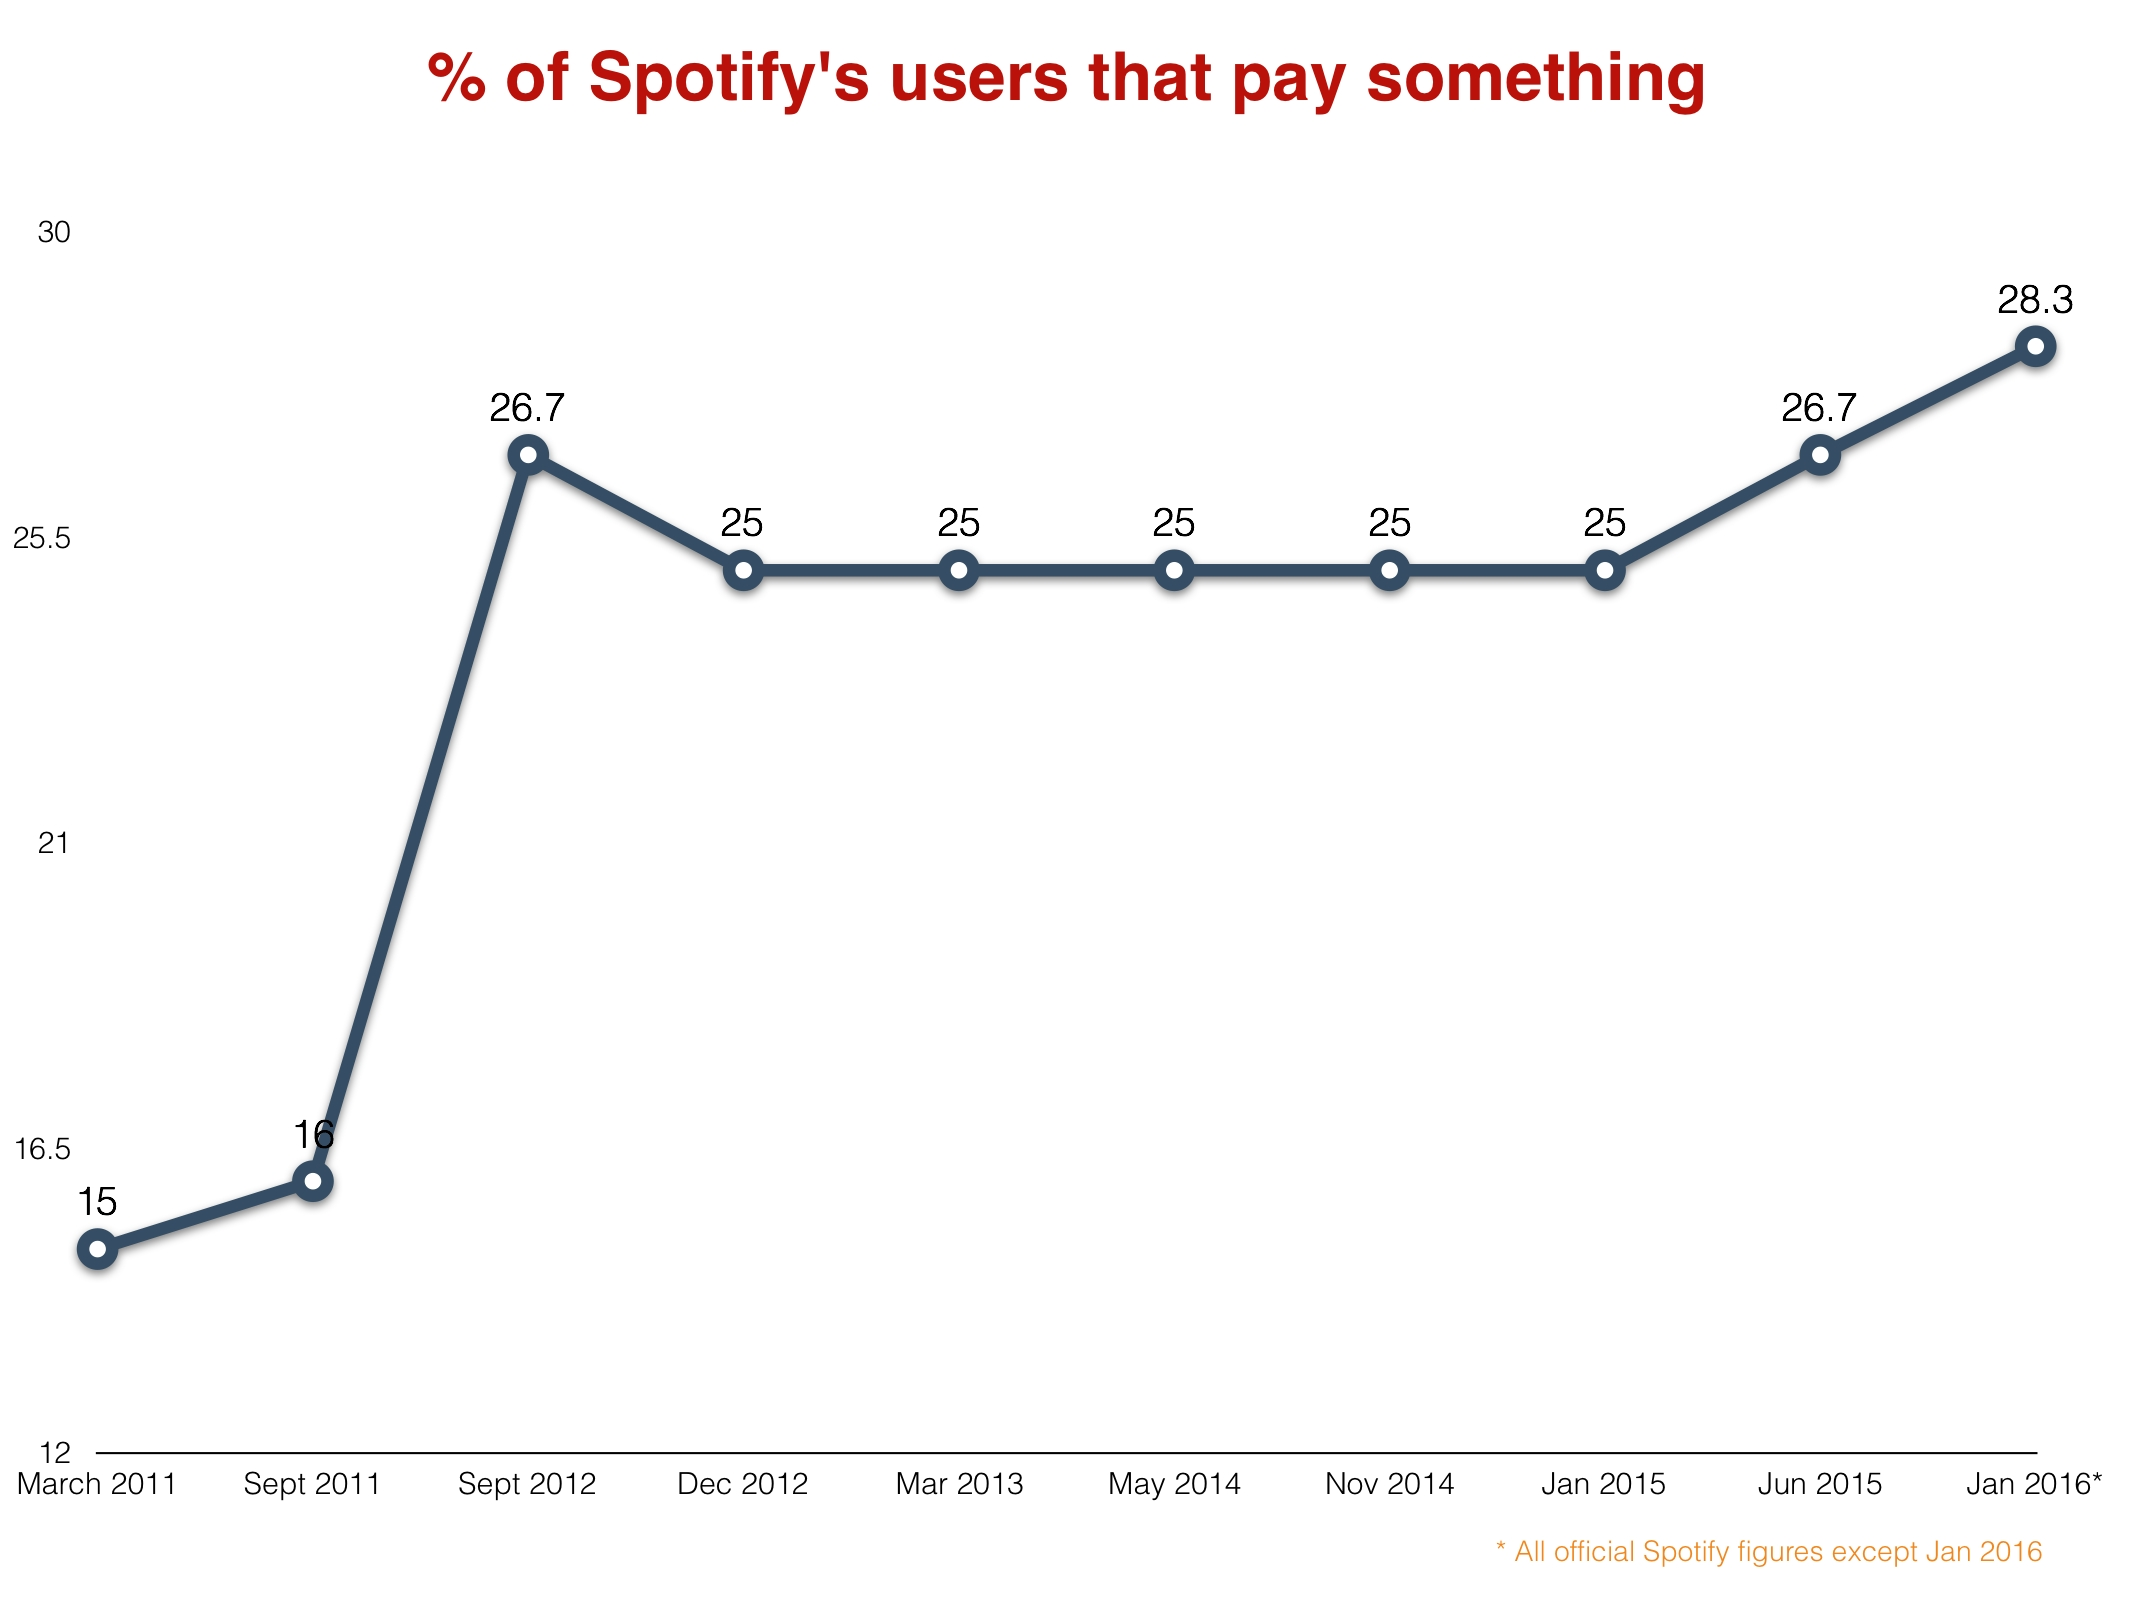 Spotify is converting more people into paying subscribers than ever